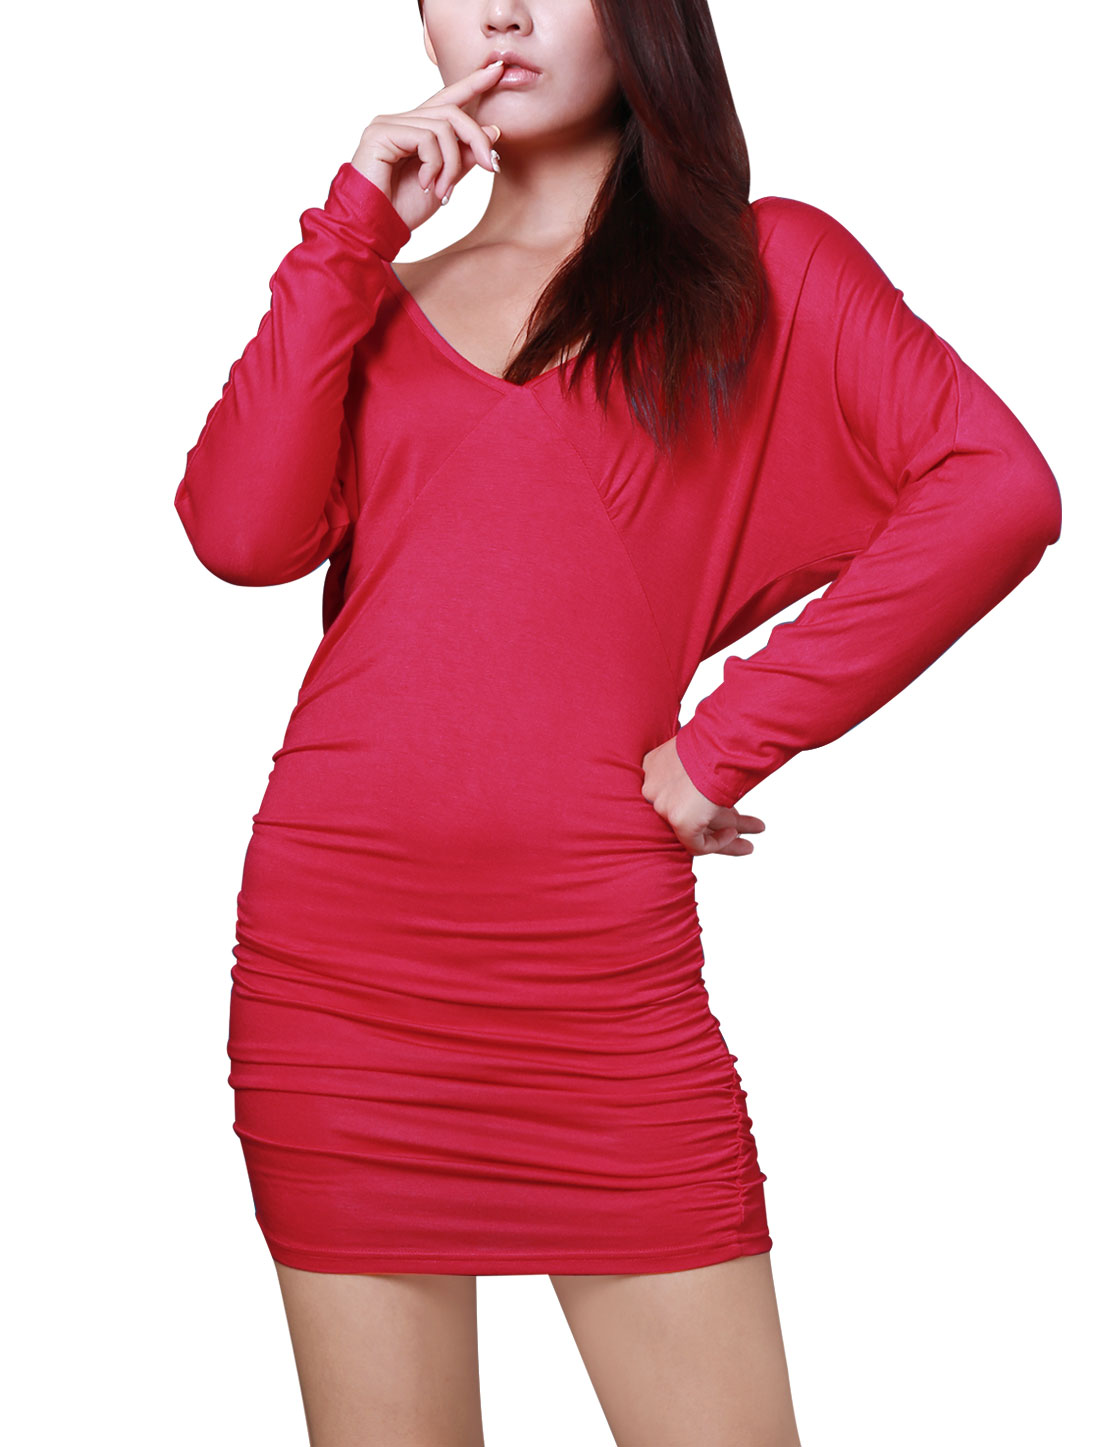 Deep V Neck Long Sleeve A-line Cutting Ruffled Red Clubwear Sexy Dress XS